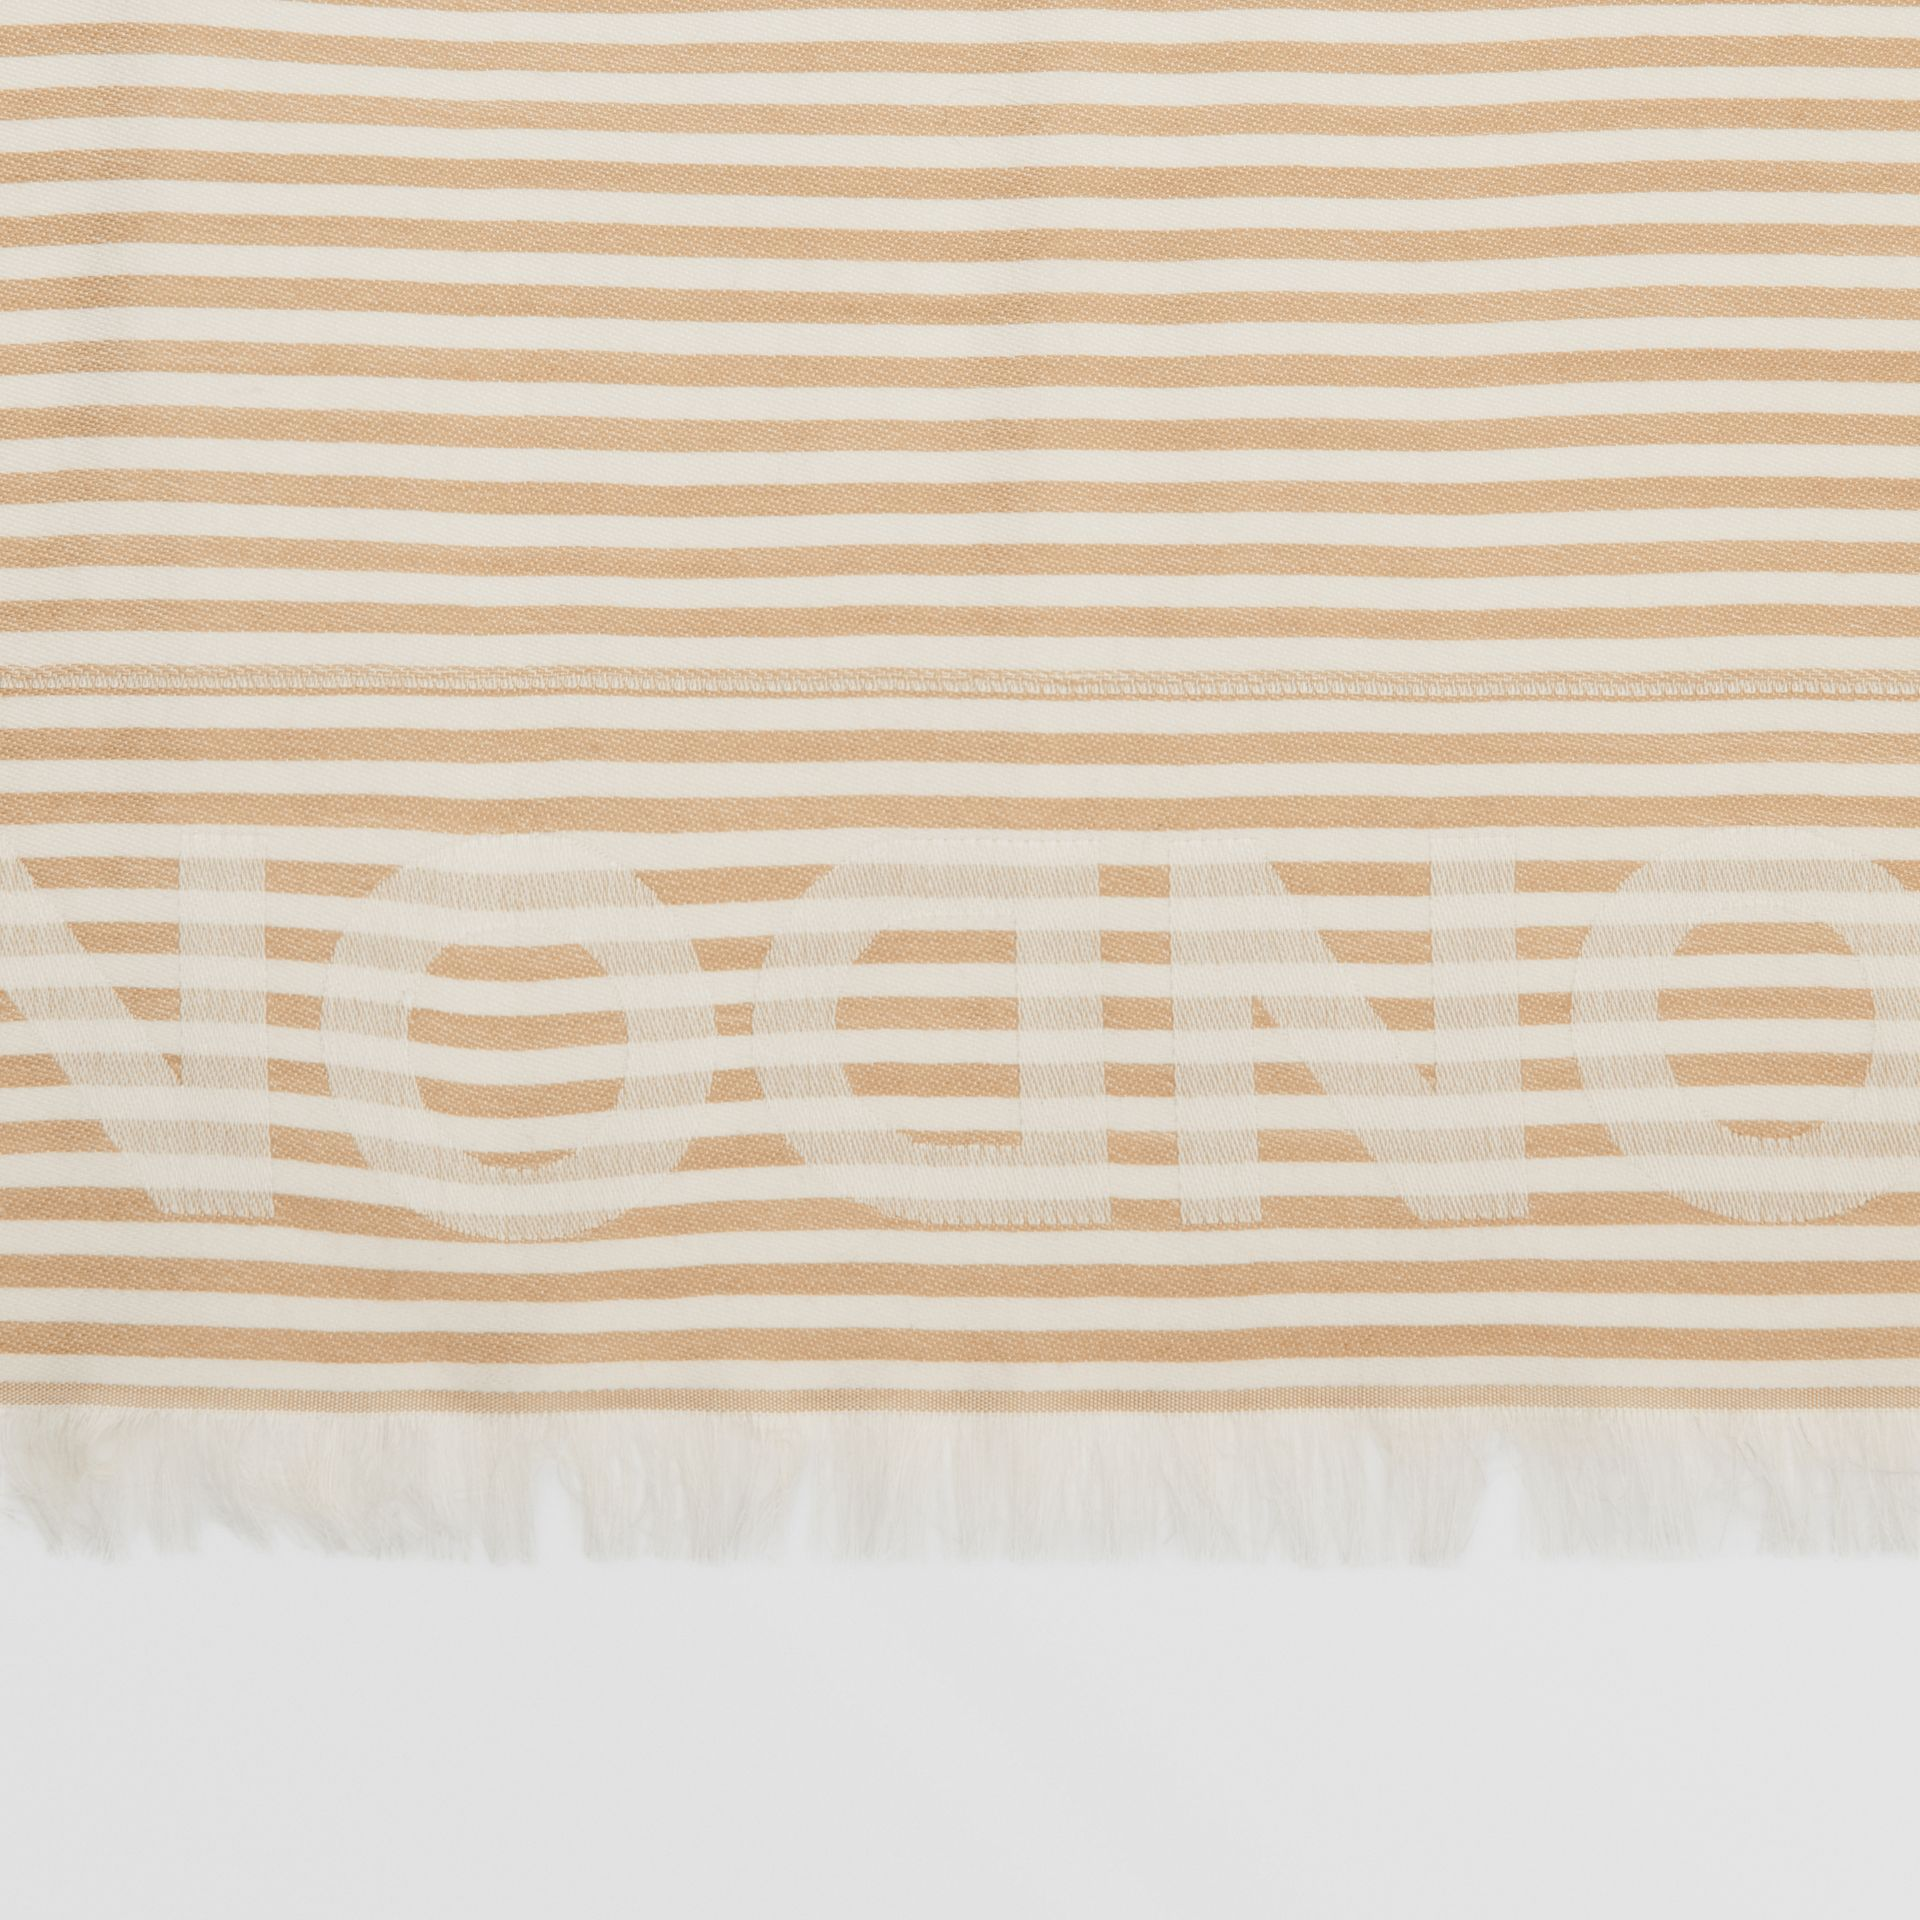 Striped Logo Silk Wool Jacquard Large Square Scarf in Archive Beige   Burberry - gallery image 1